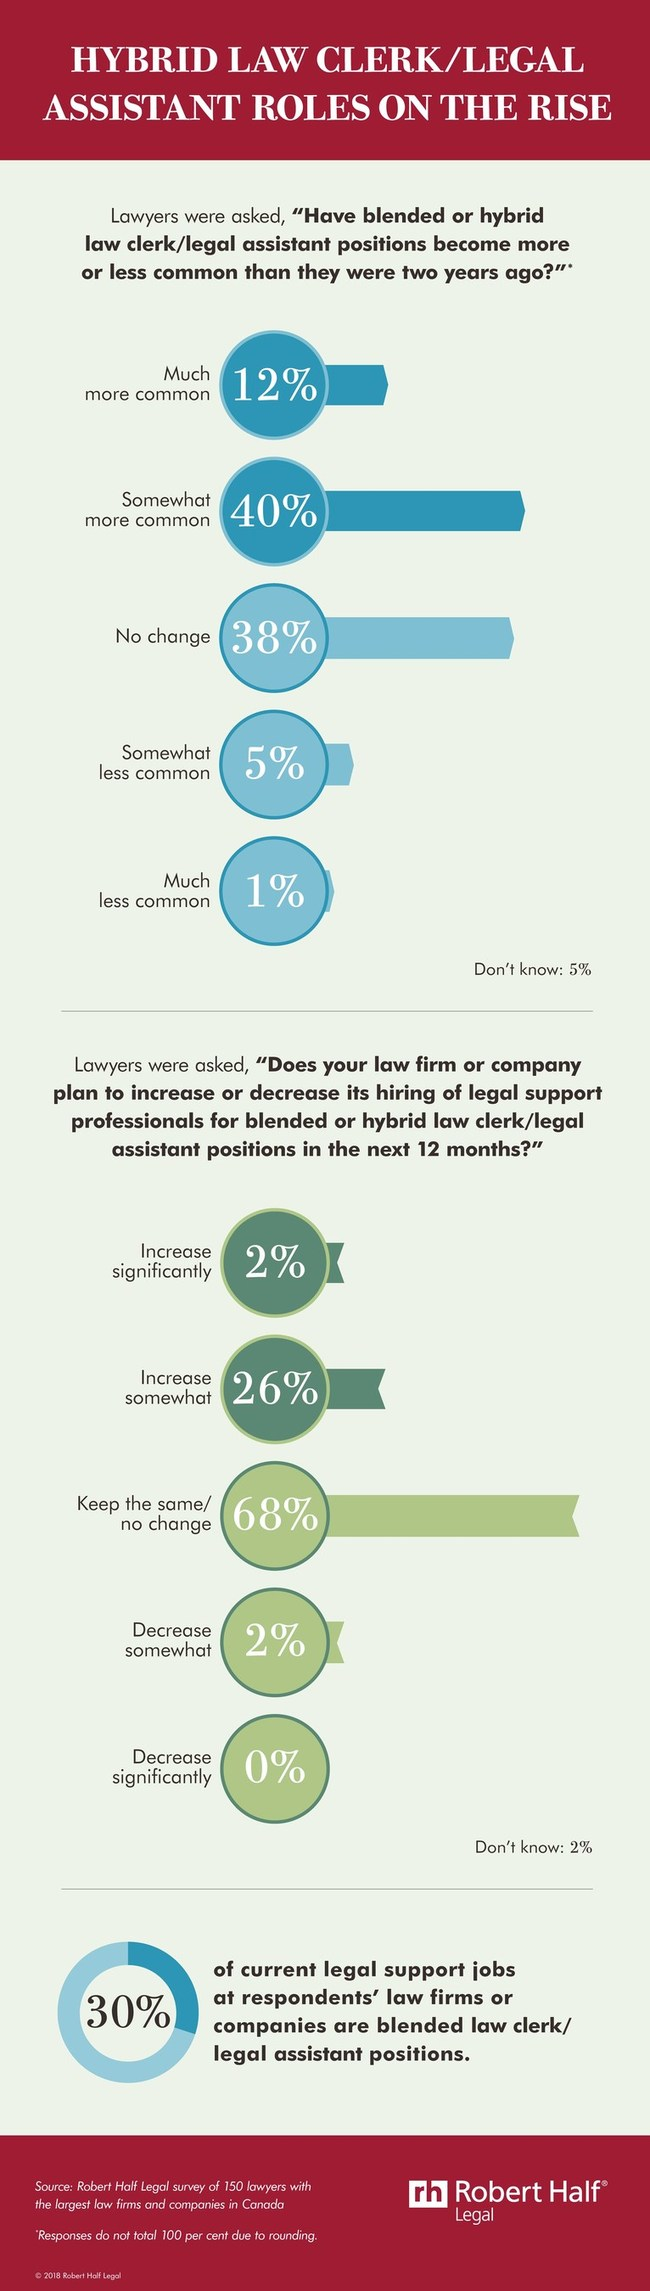 Blended legal support roles on the rise. (CNW Group/Robert Half Legal)